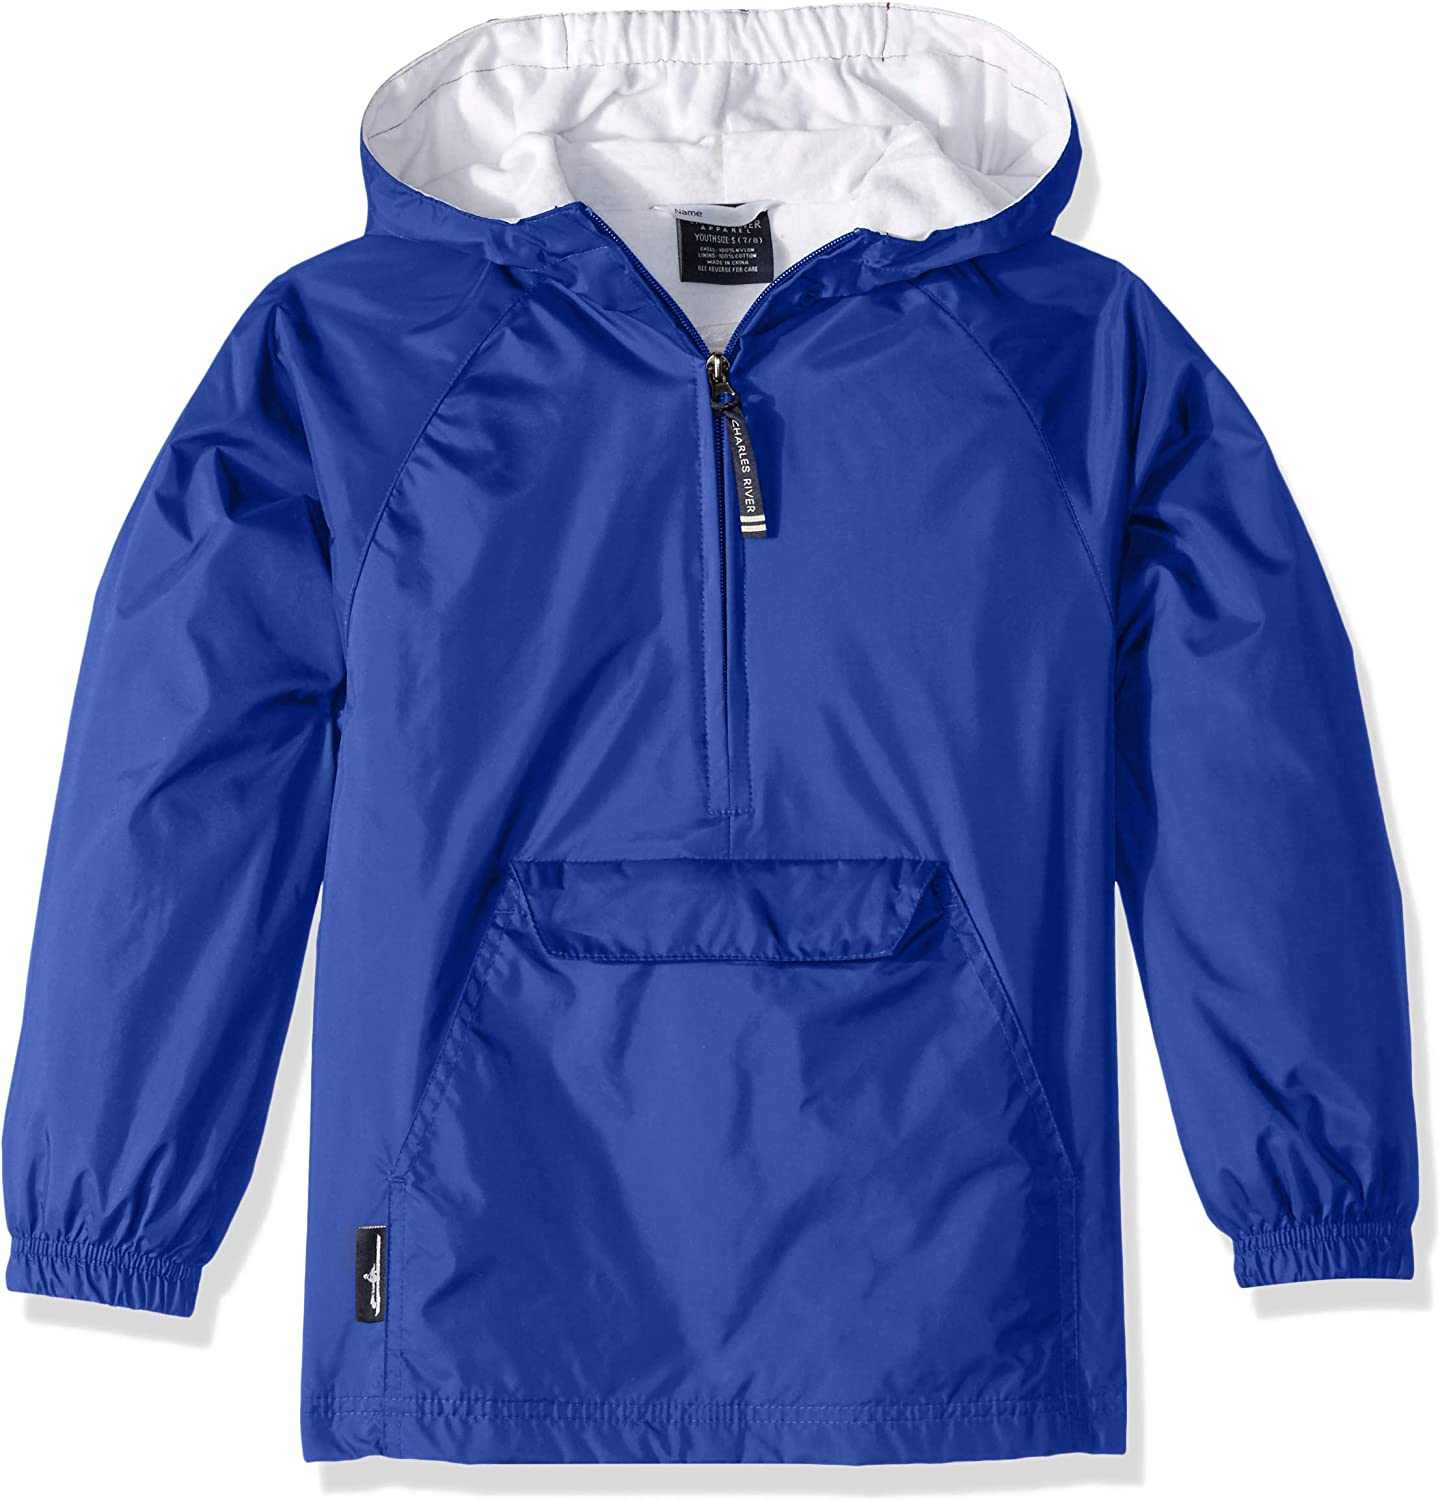 Charles River Apparel Youth Water Resistant Hooded Jacket